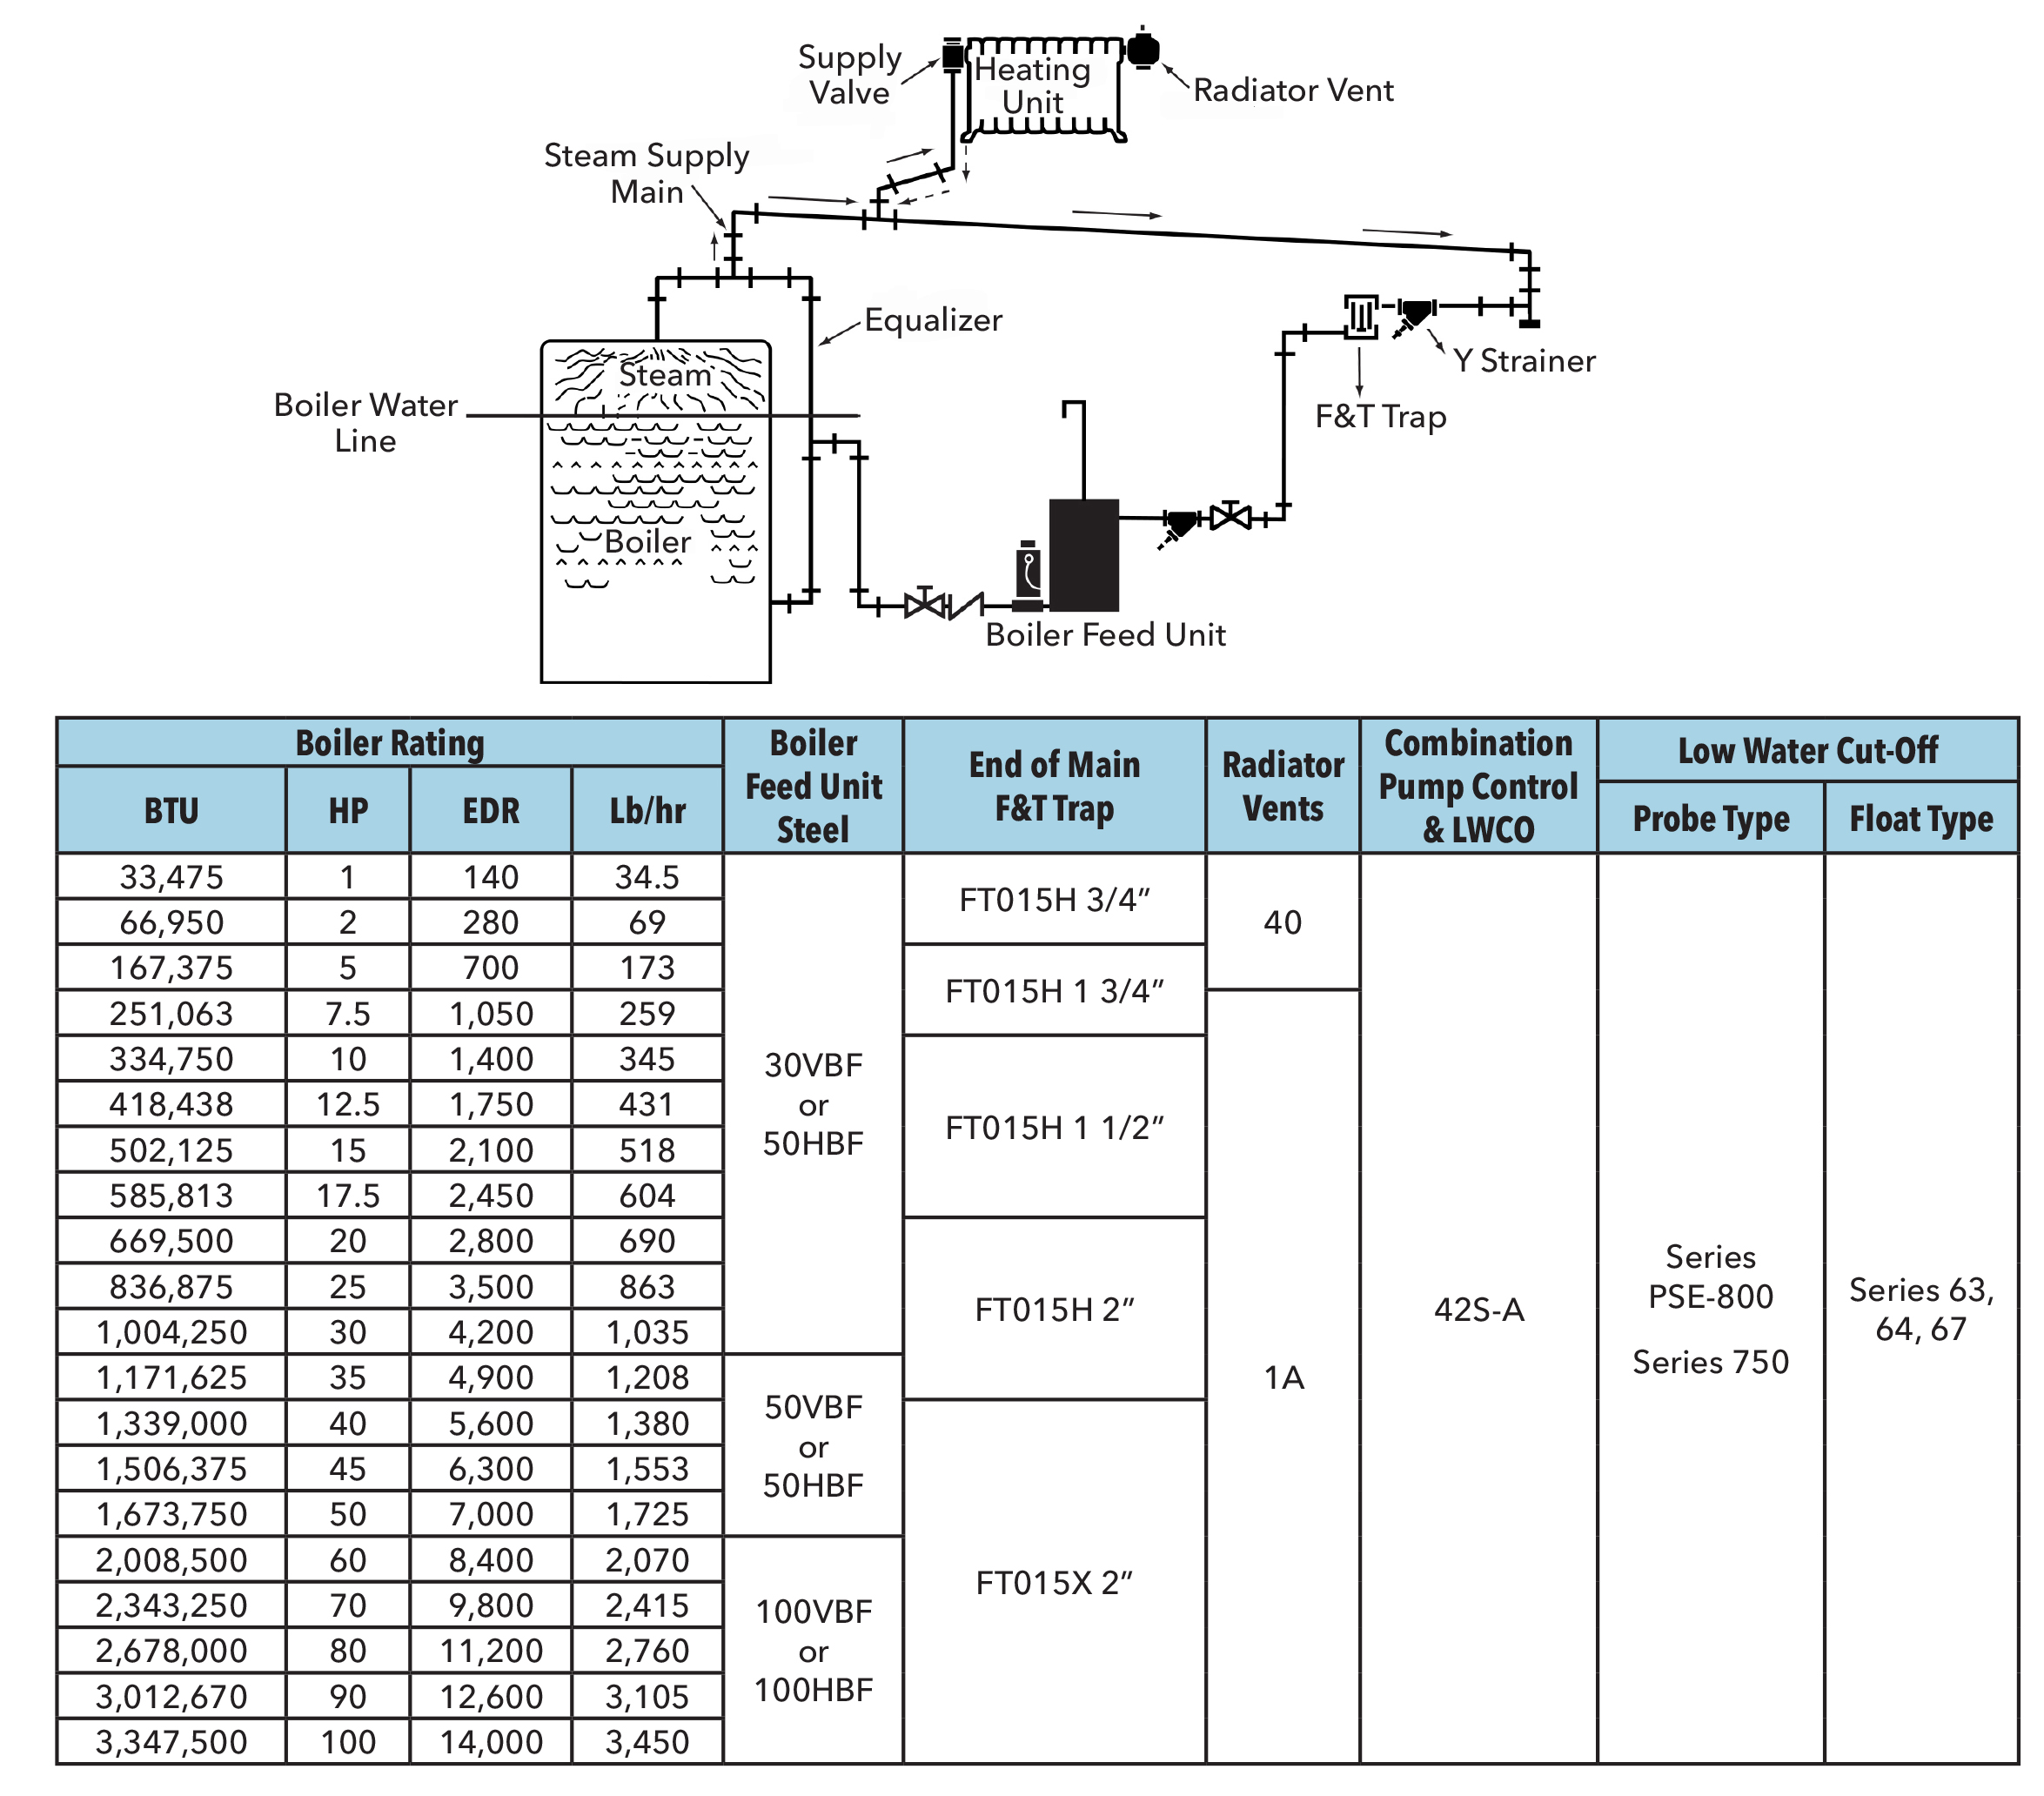 Piping layout and suggested product for one pipe pumped return systems based on system size